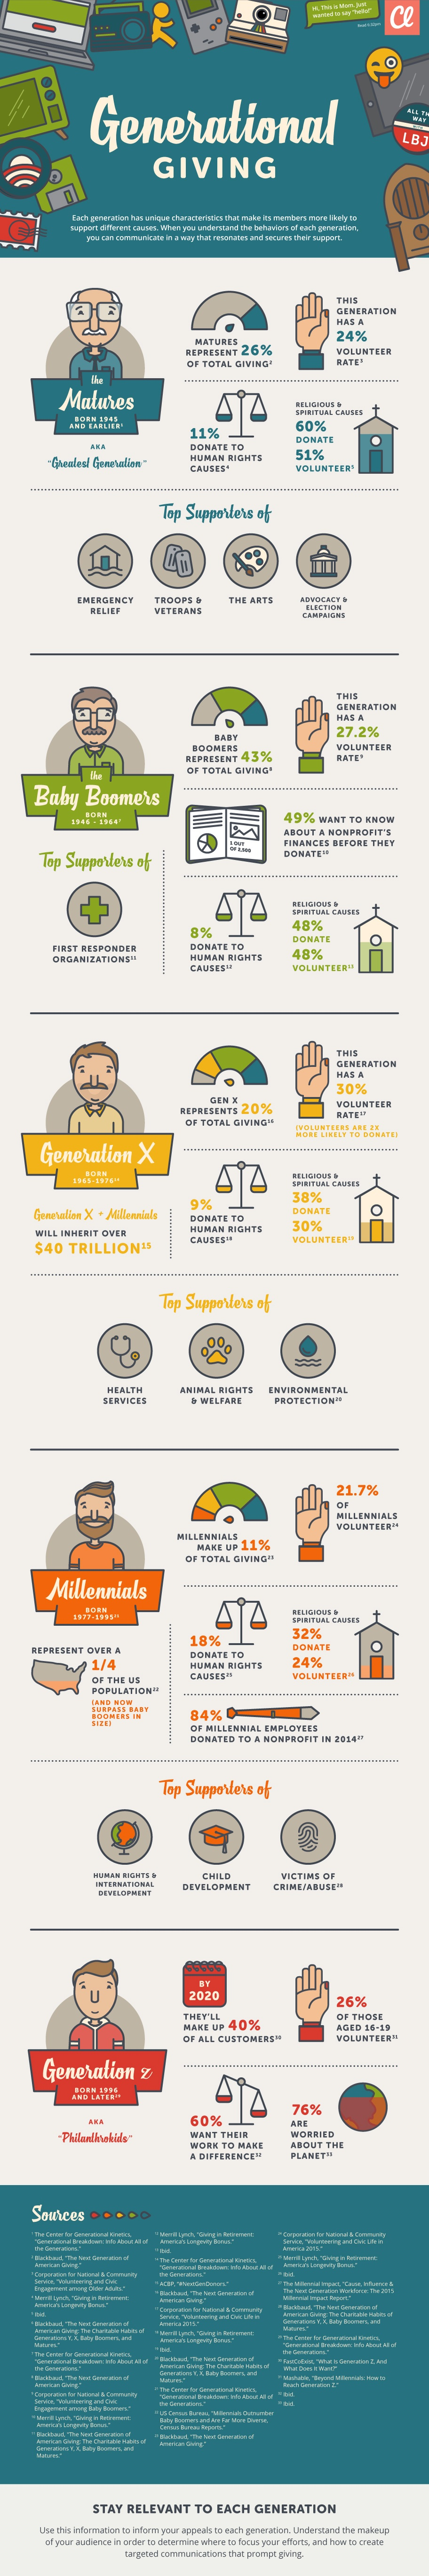 Infographic on differences in generational giving